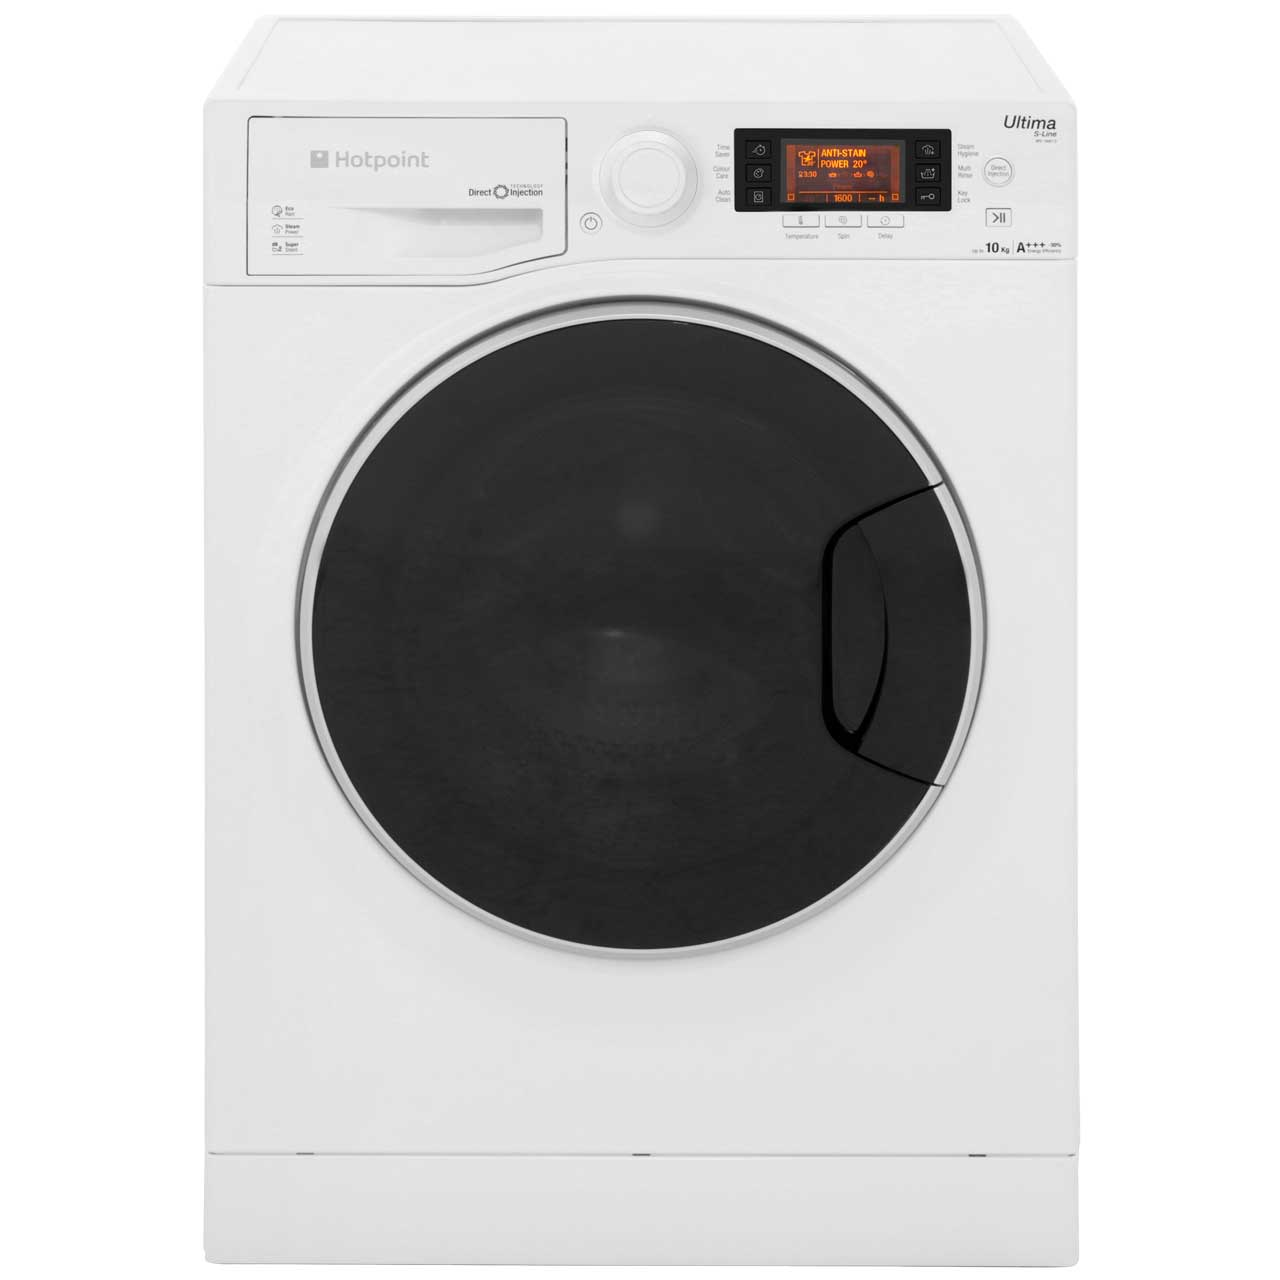 Hotpoint Ultima SLine RPD10667DD Free Standing Washing Machine in White